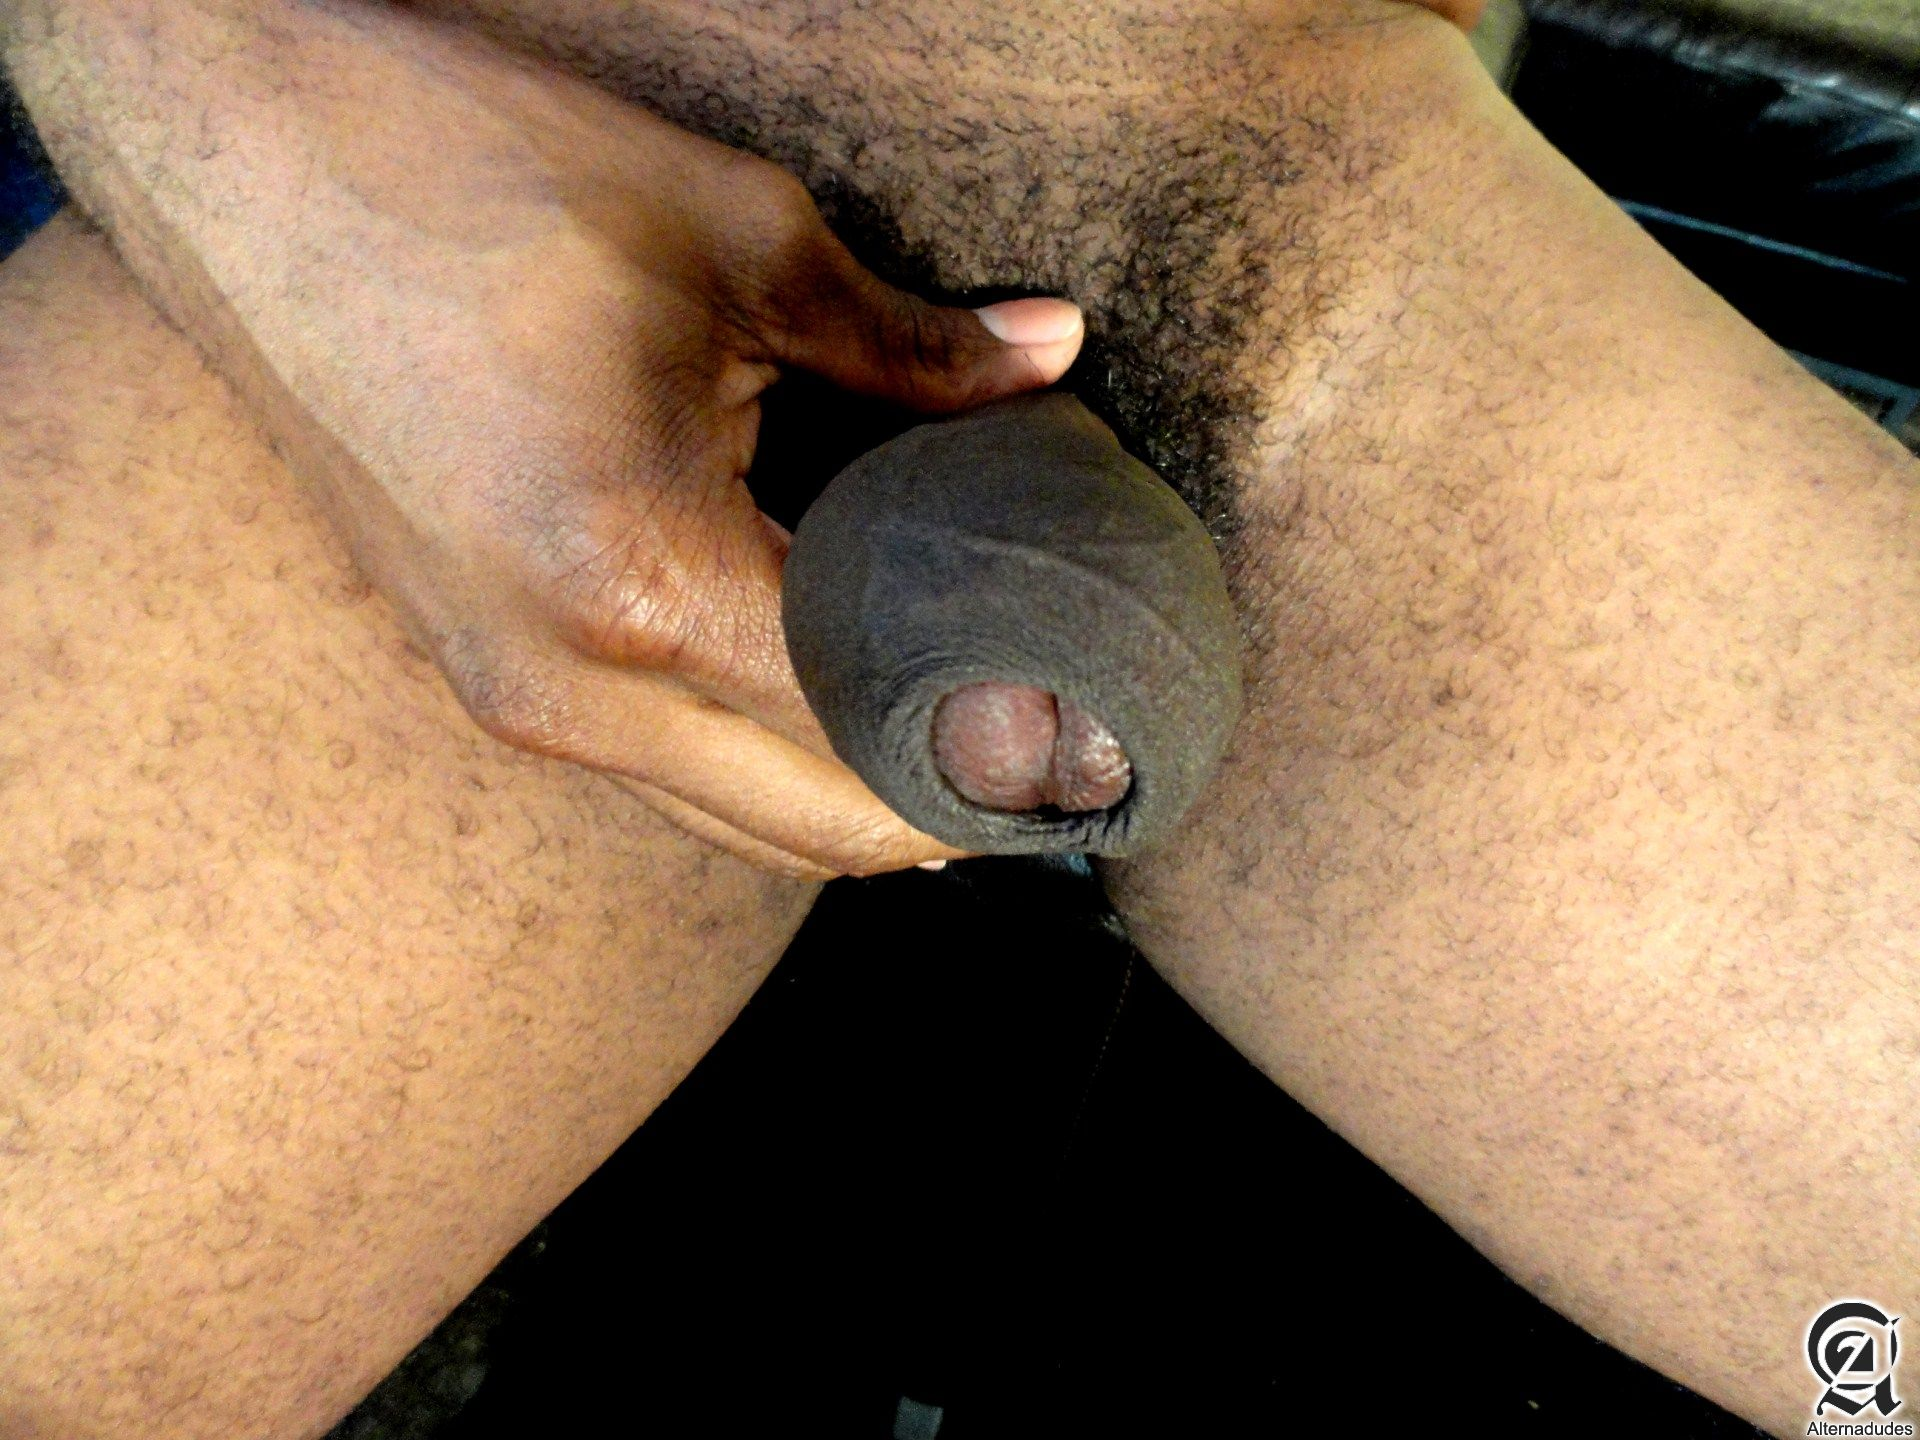 Large uncut cocks